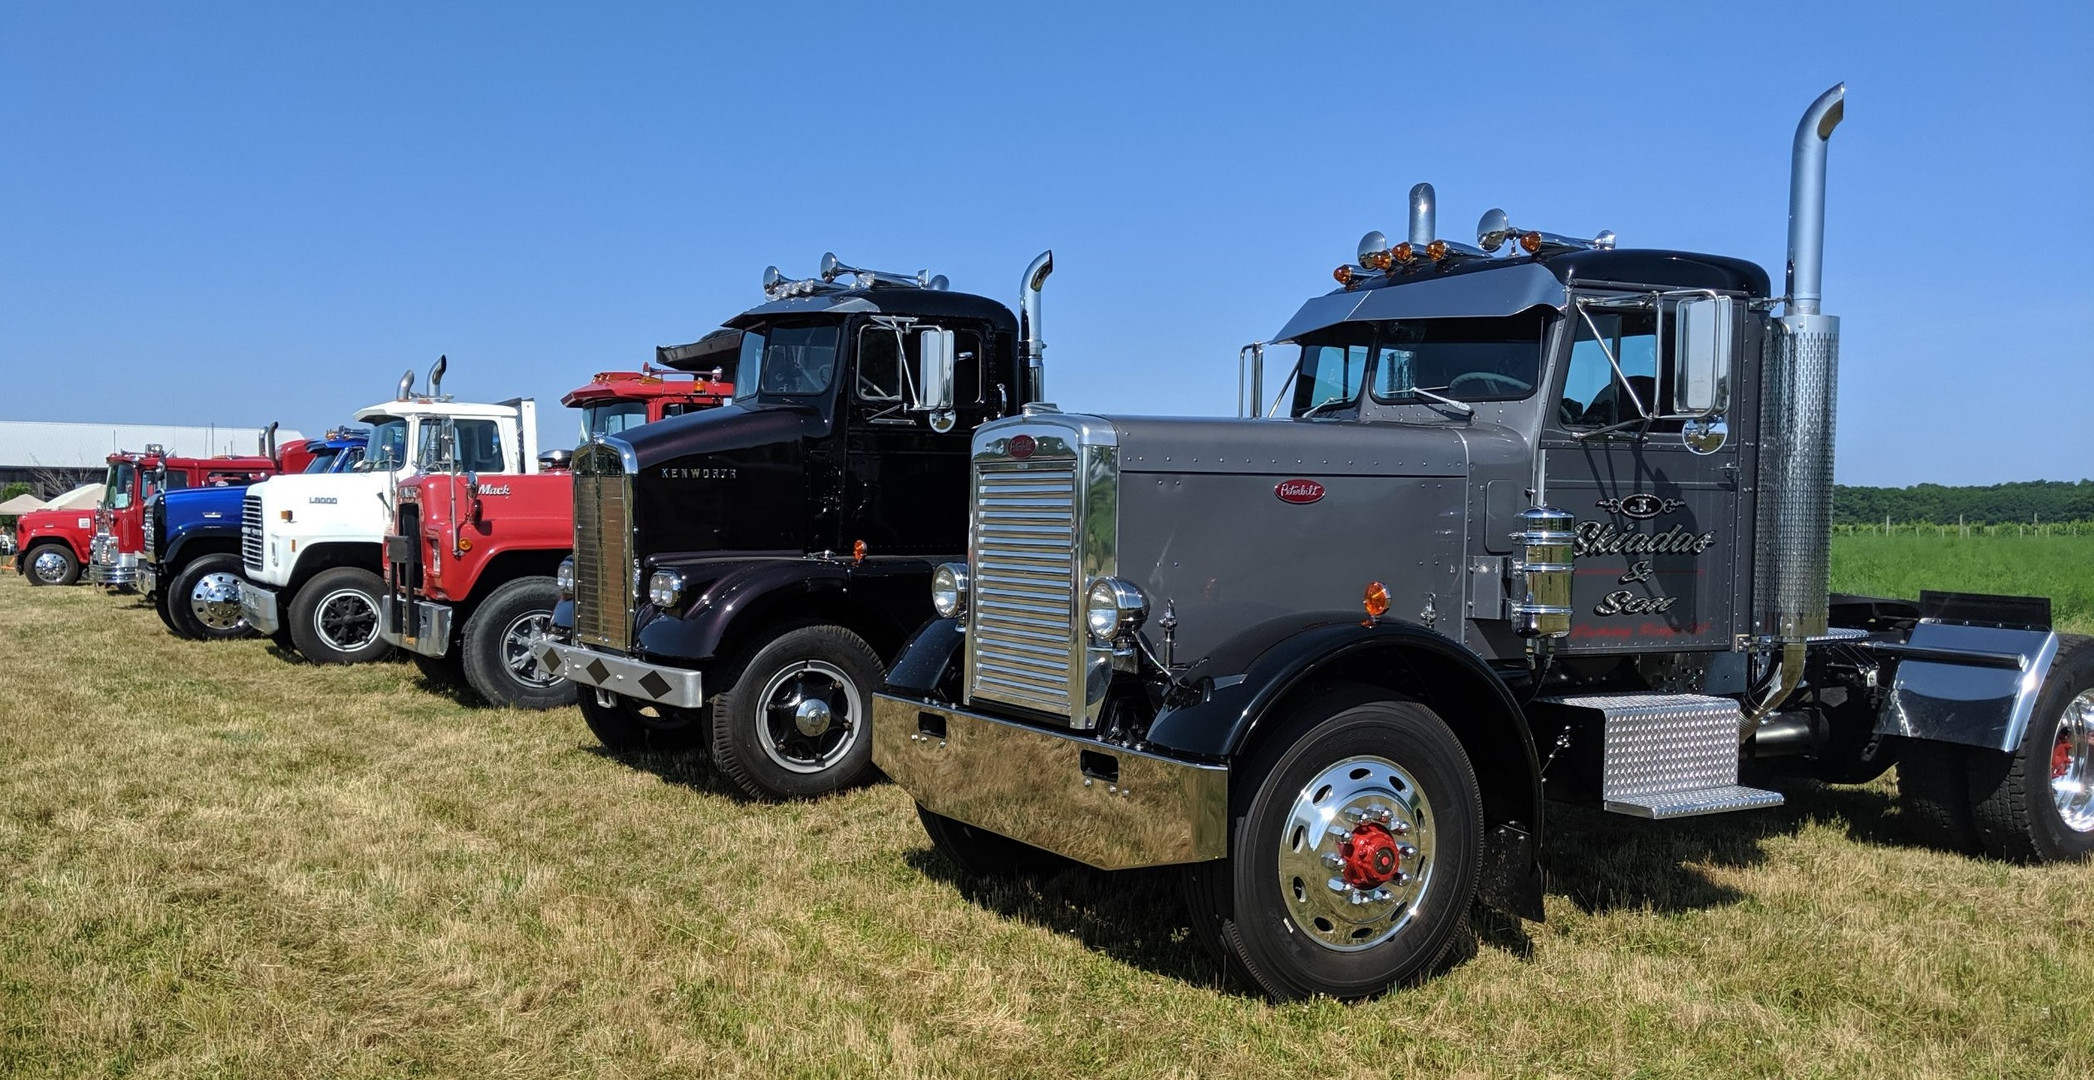 Line up of trucks on the show field